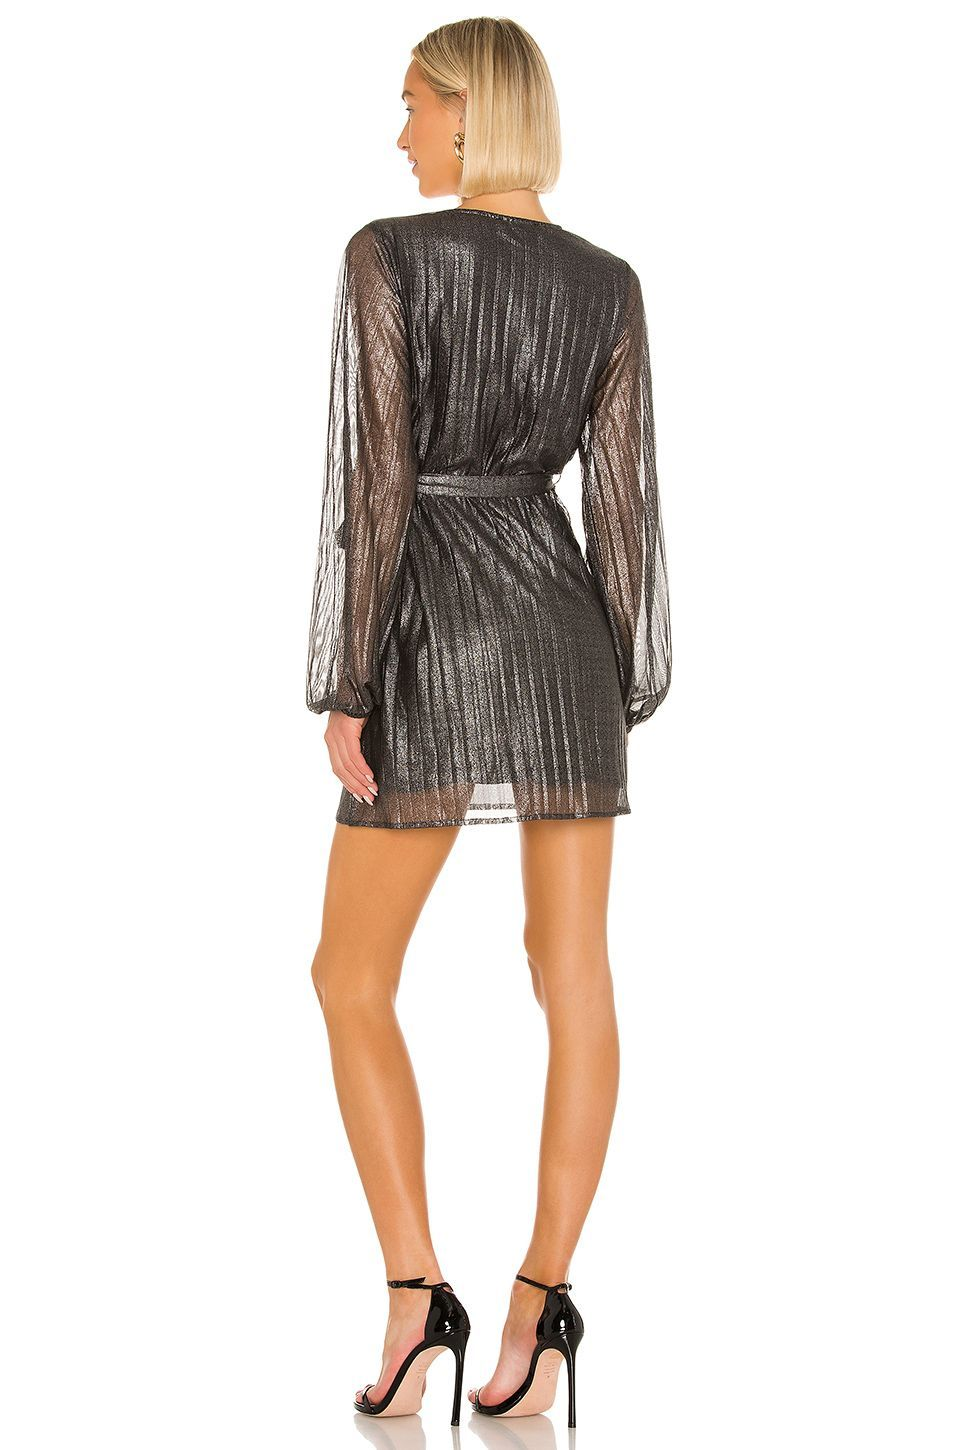 Its Party Time Faux Wrap Dress in Black ShineSanctuary Its Party Time Faux Wrap Dress in Black Shine